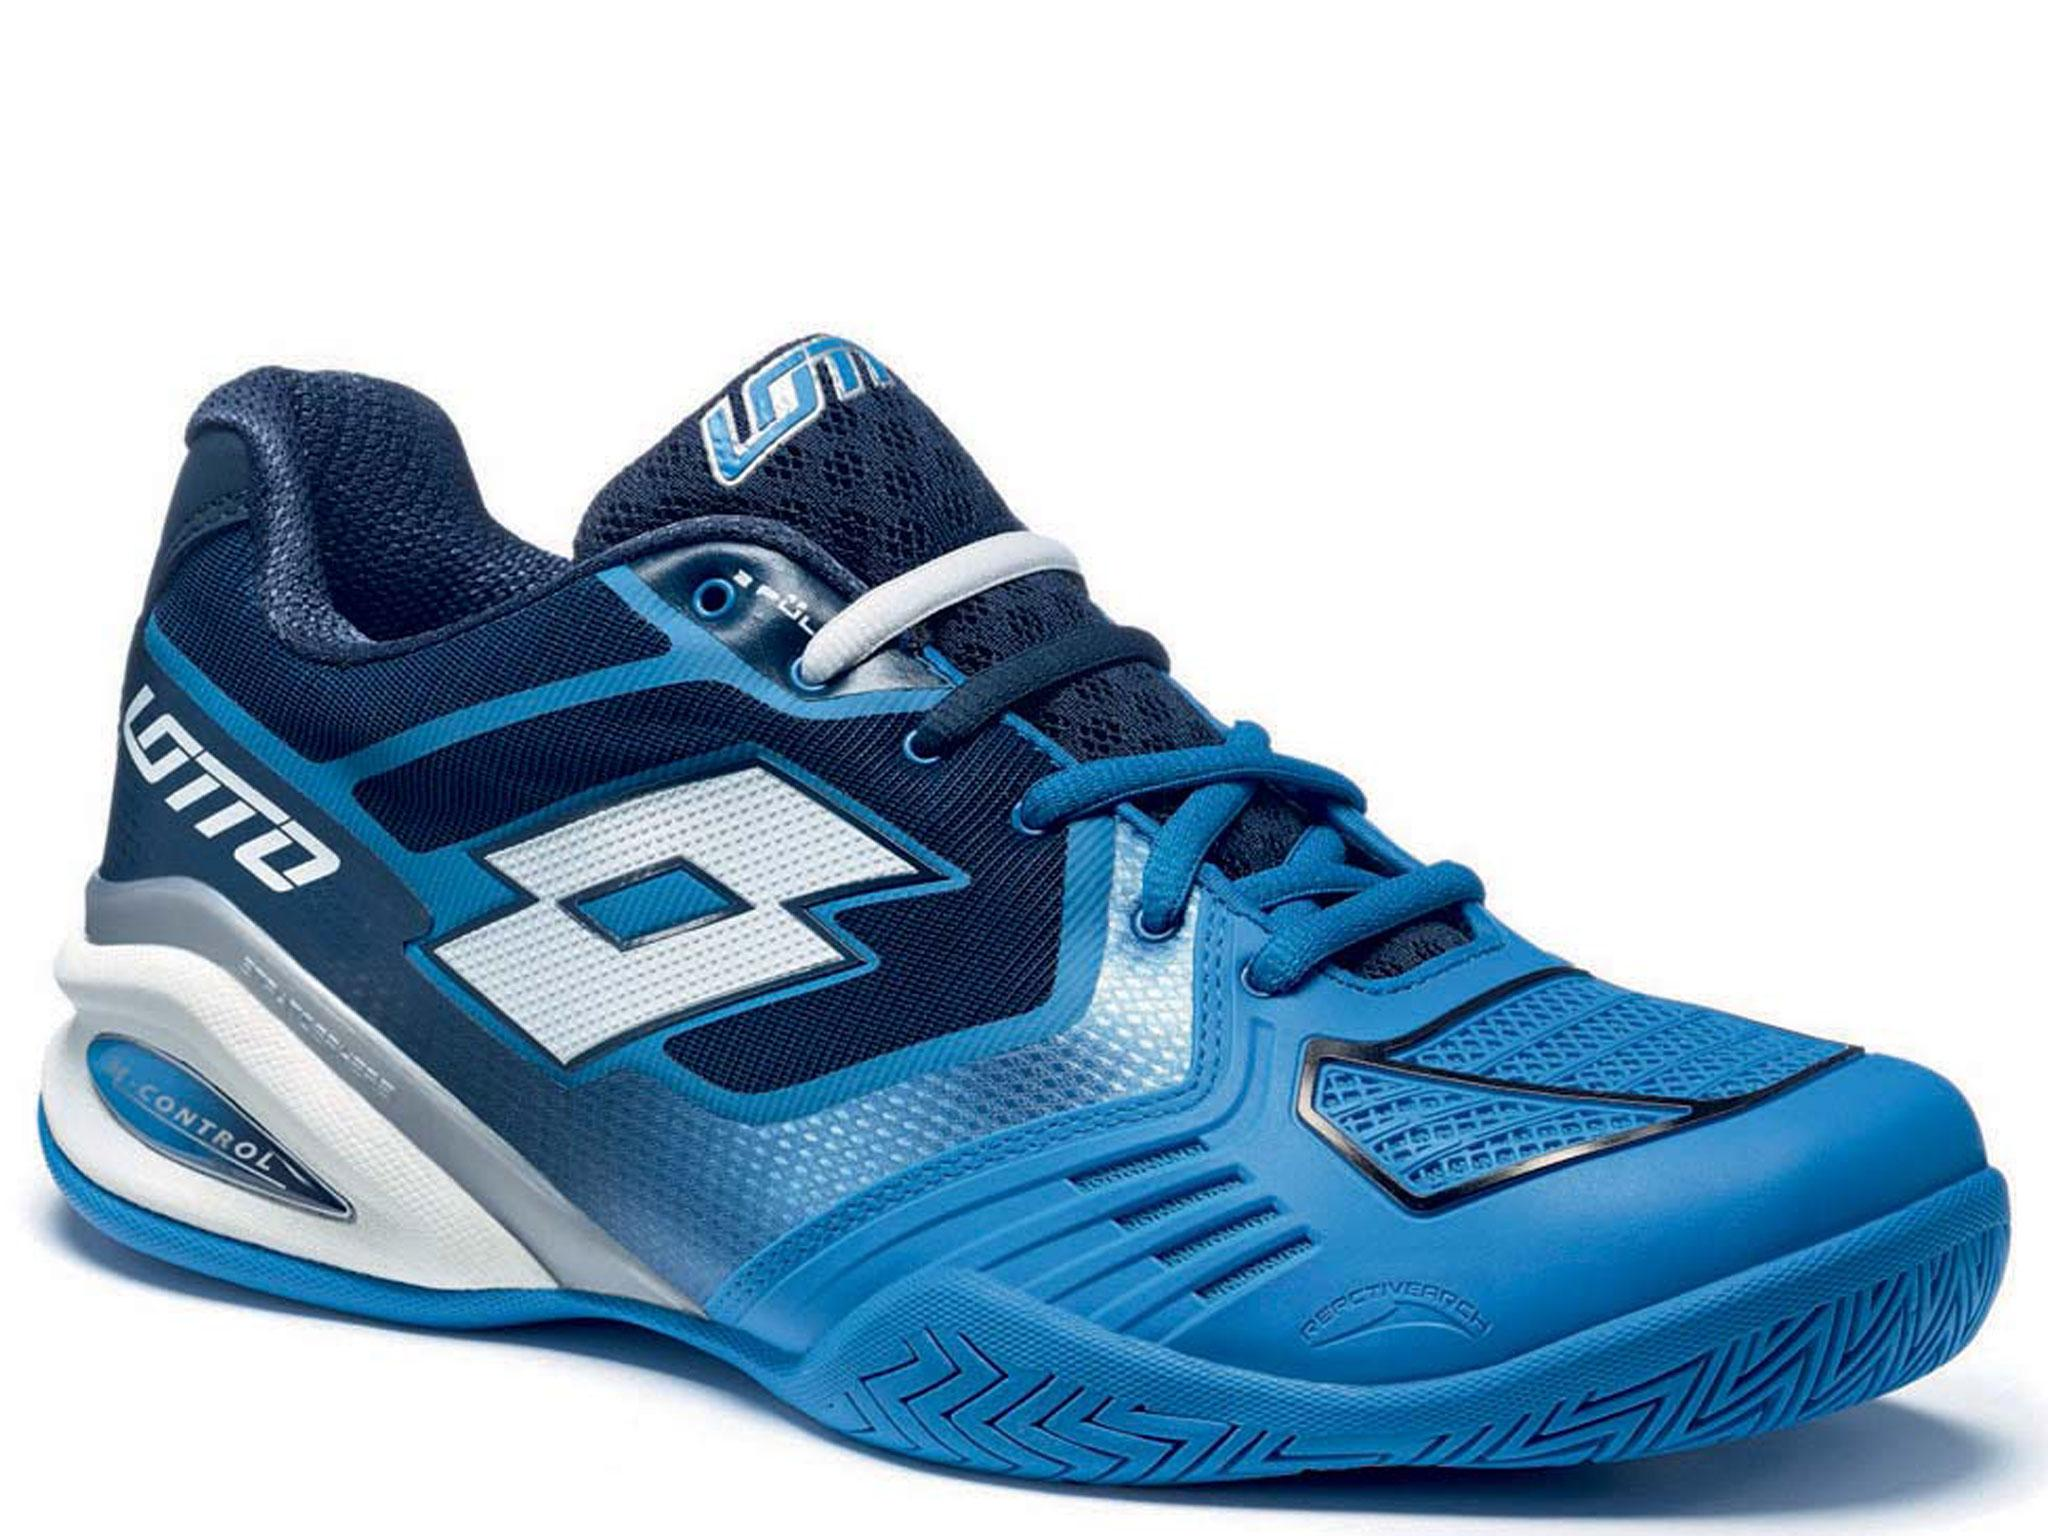 e0d929ccbcb8 6. Lotto Stratosphere II Speed Tennis Shoes  £87.90